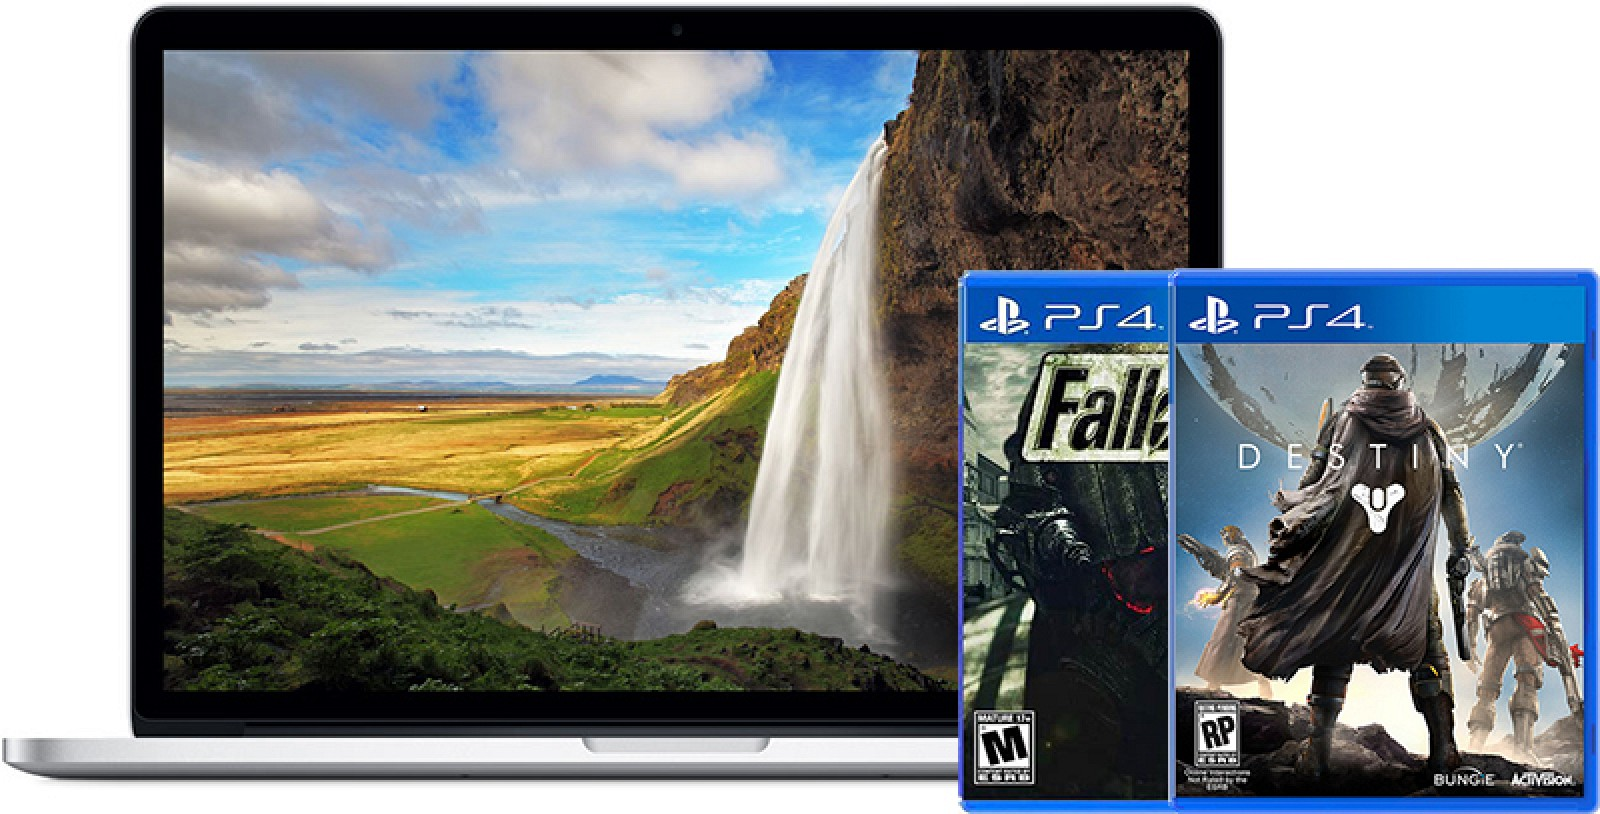 Sony Working on App to Stream PS4 Games on Mac and PC - Mac Rumors